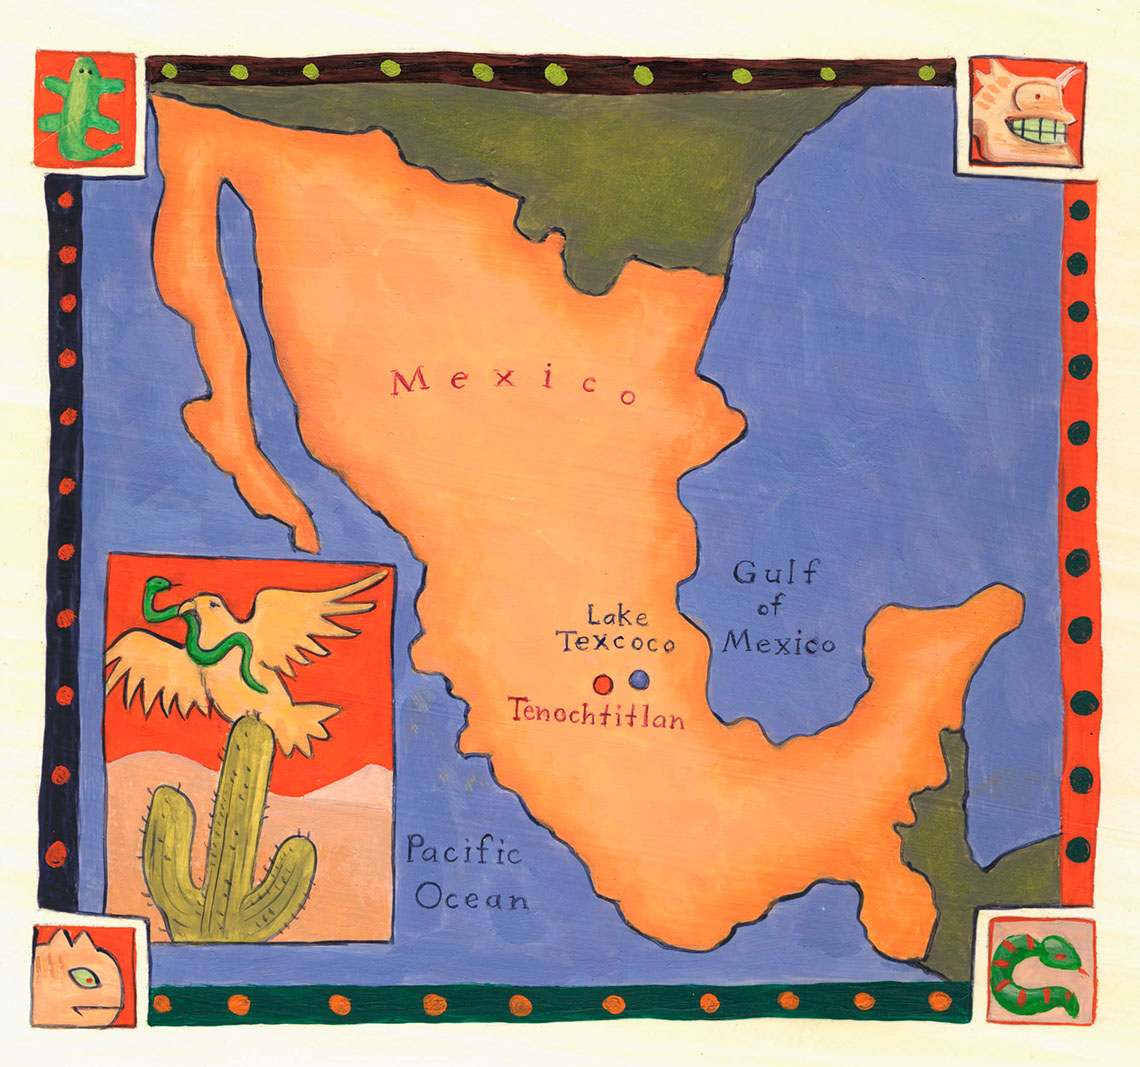 illustration-Architecture and Maps_Mexico-Mike Jaroszko